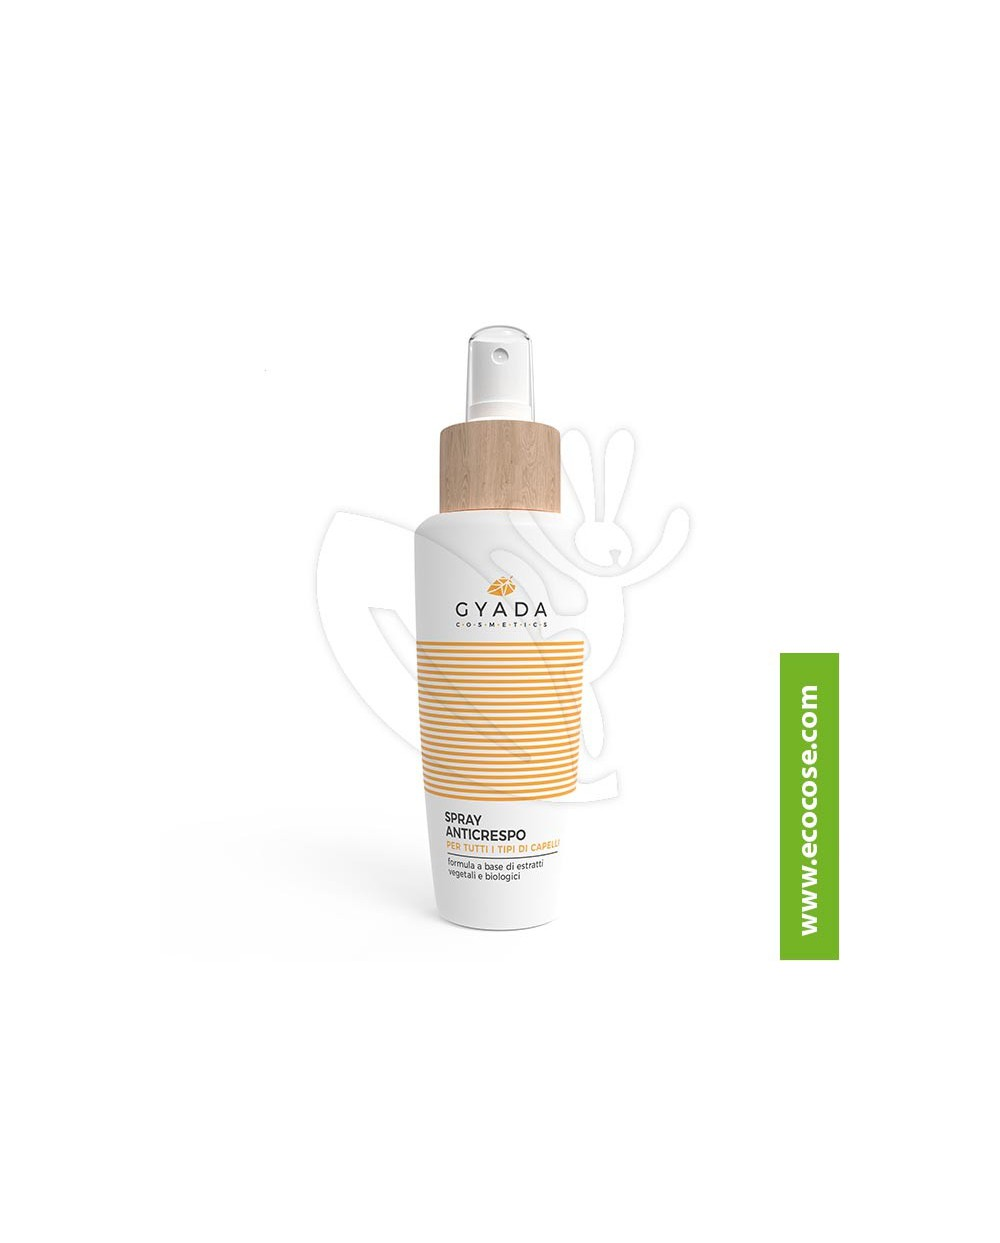 Gyada Cosmetics - Spray anticrespo